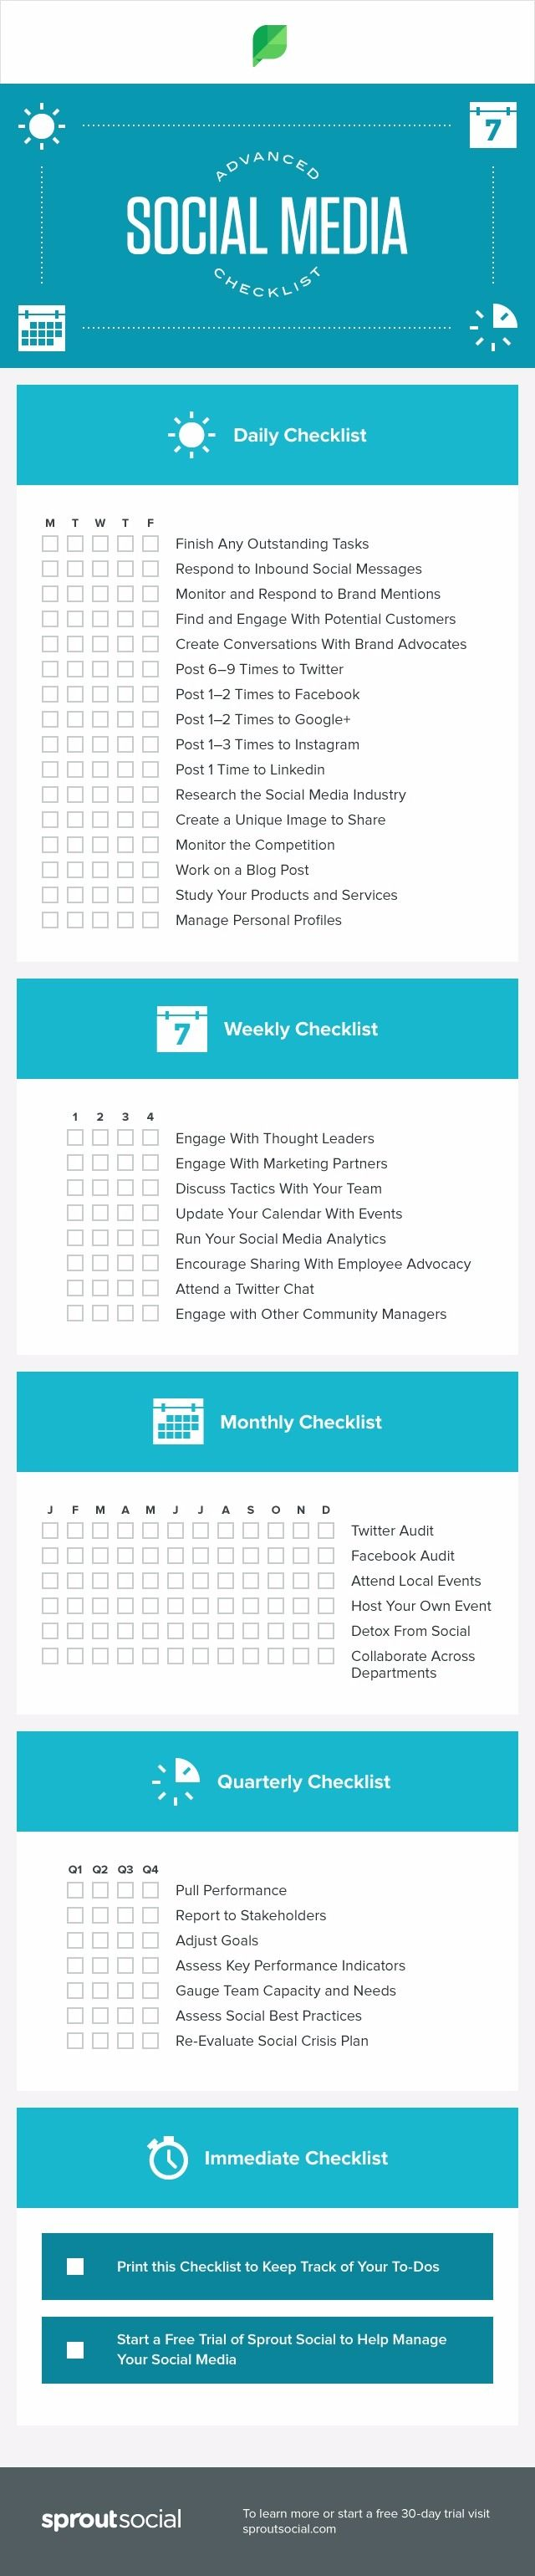 your complete social media checklist - Using Social Media For Branding Yourself Promoting Yourself And Finding A Great Job